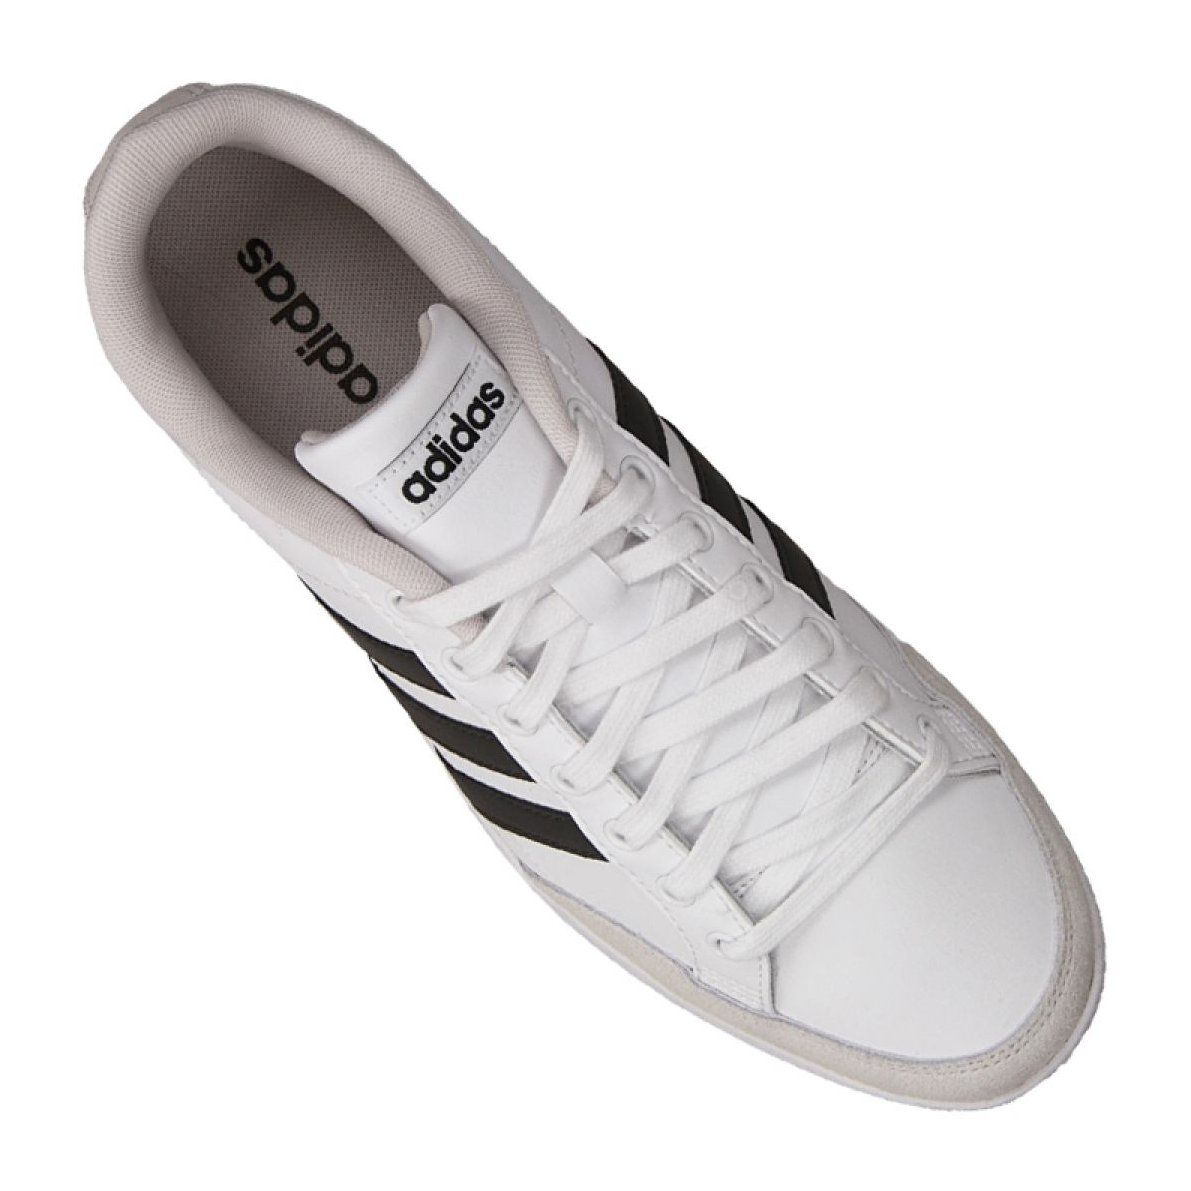 Adidas Caflaire M DB1347 shoes white | Shoes, Sports shoes